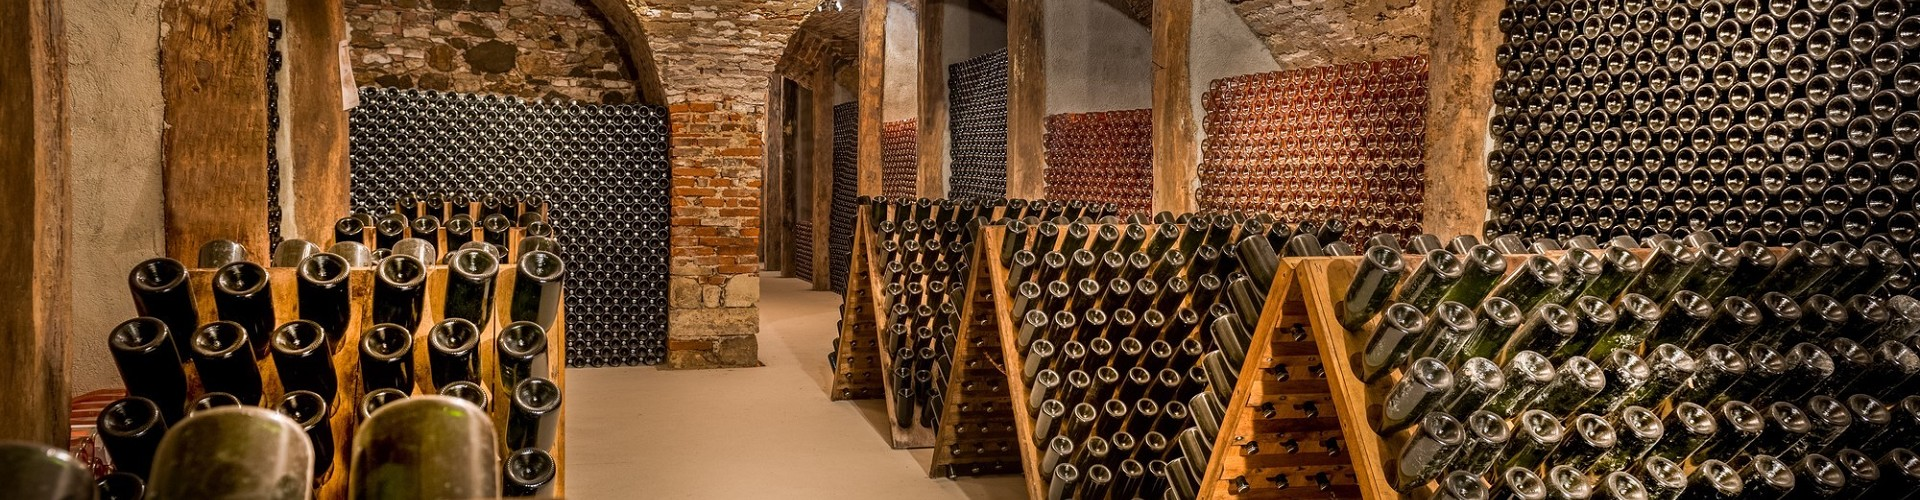 Piedmont Wine Tours from Genoa | Piedmont Wine Tours from Turin | Alba Wine tours